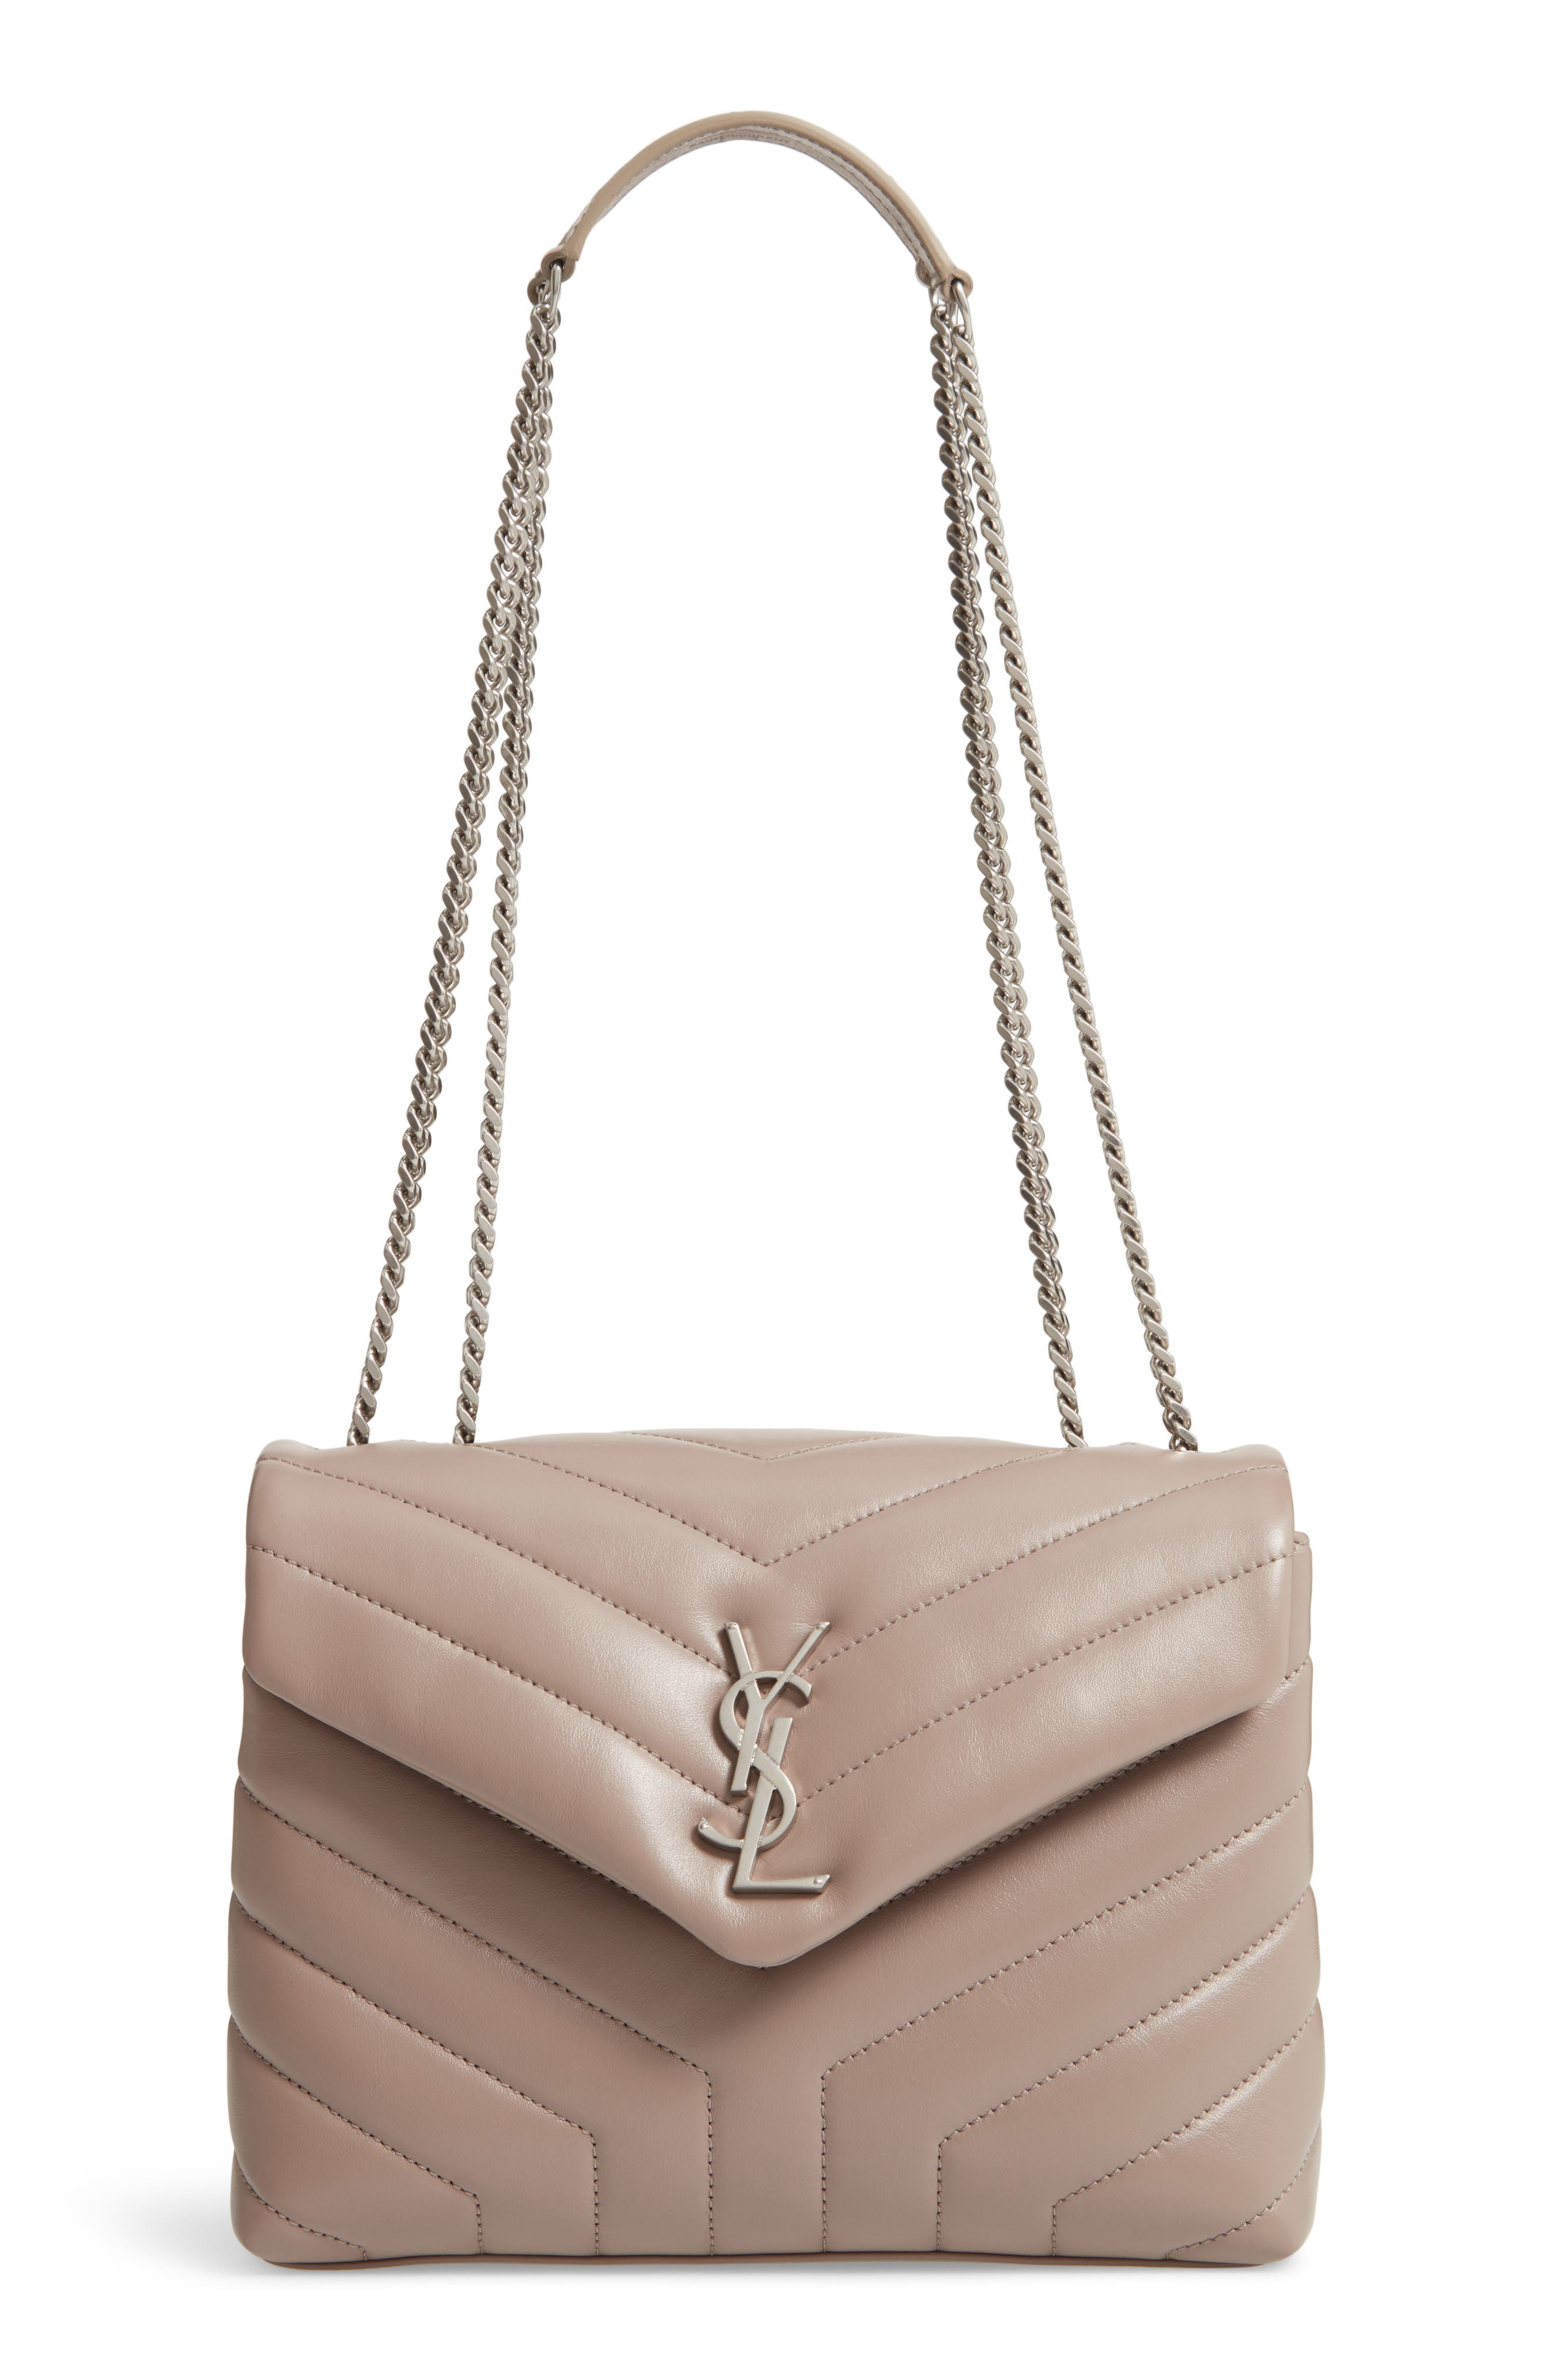 Loulou Monogram Ysl Small V-Flap Chain Shoulder Bag - Miroir Hardware in Taupe Sable